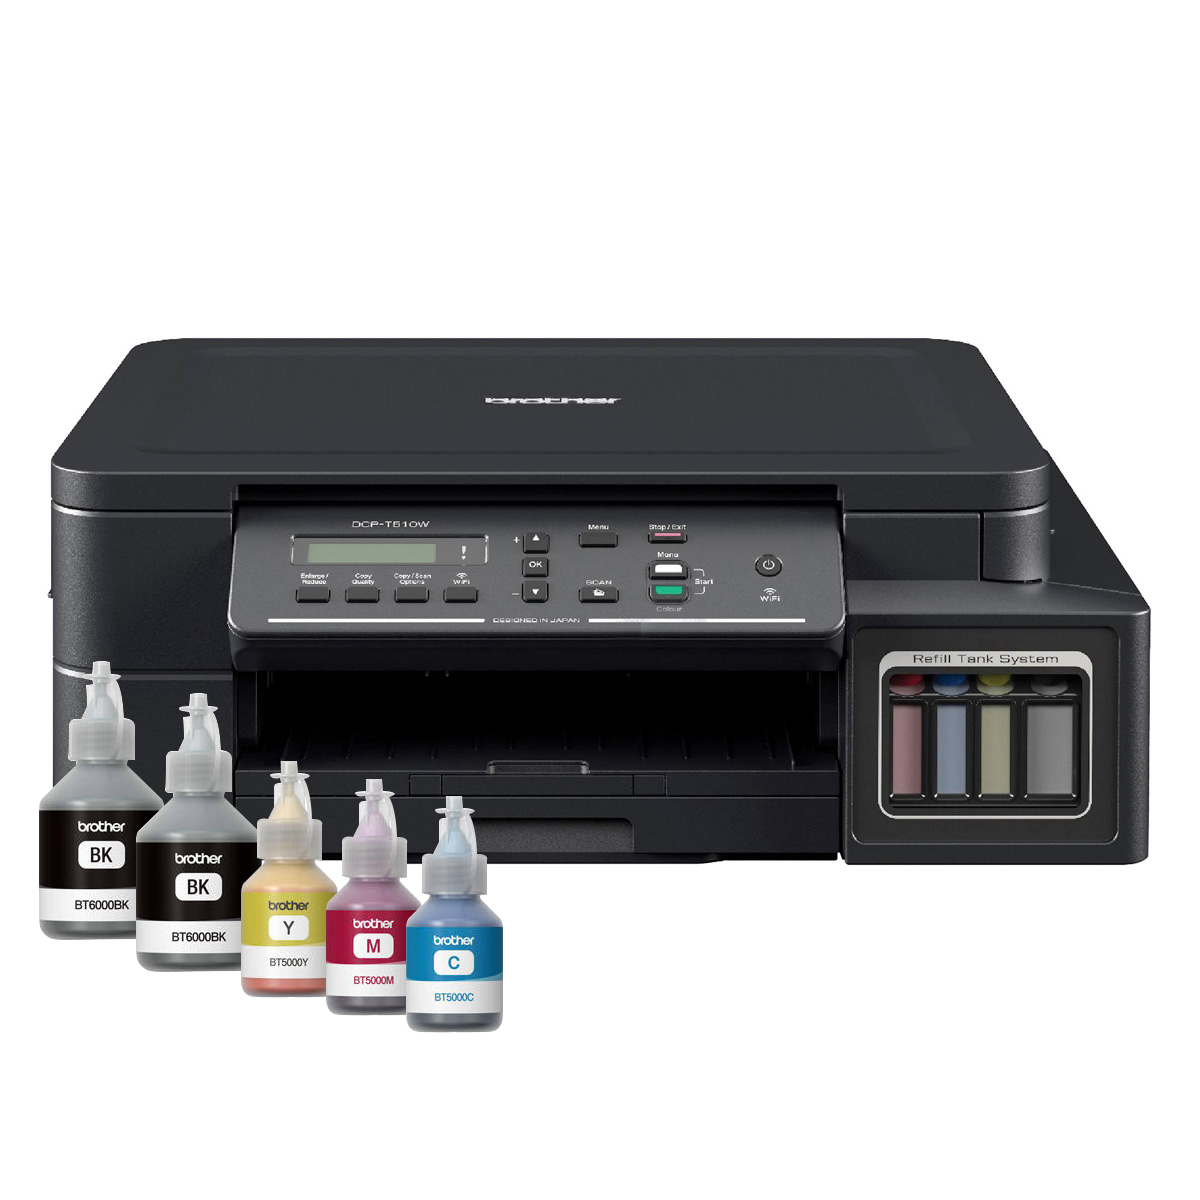 Impresora BROTHER Multifunción InkJet Eco Color Sist. Continuo WiFi T510W img 1